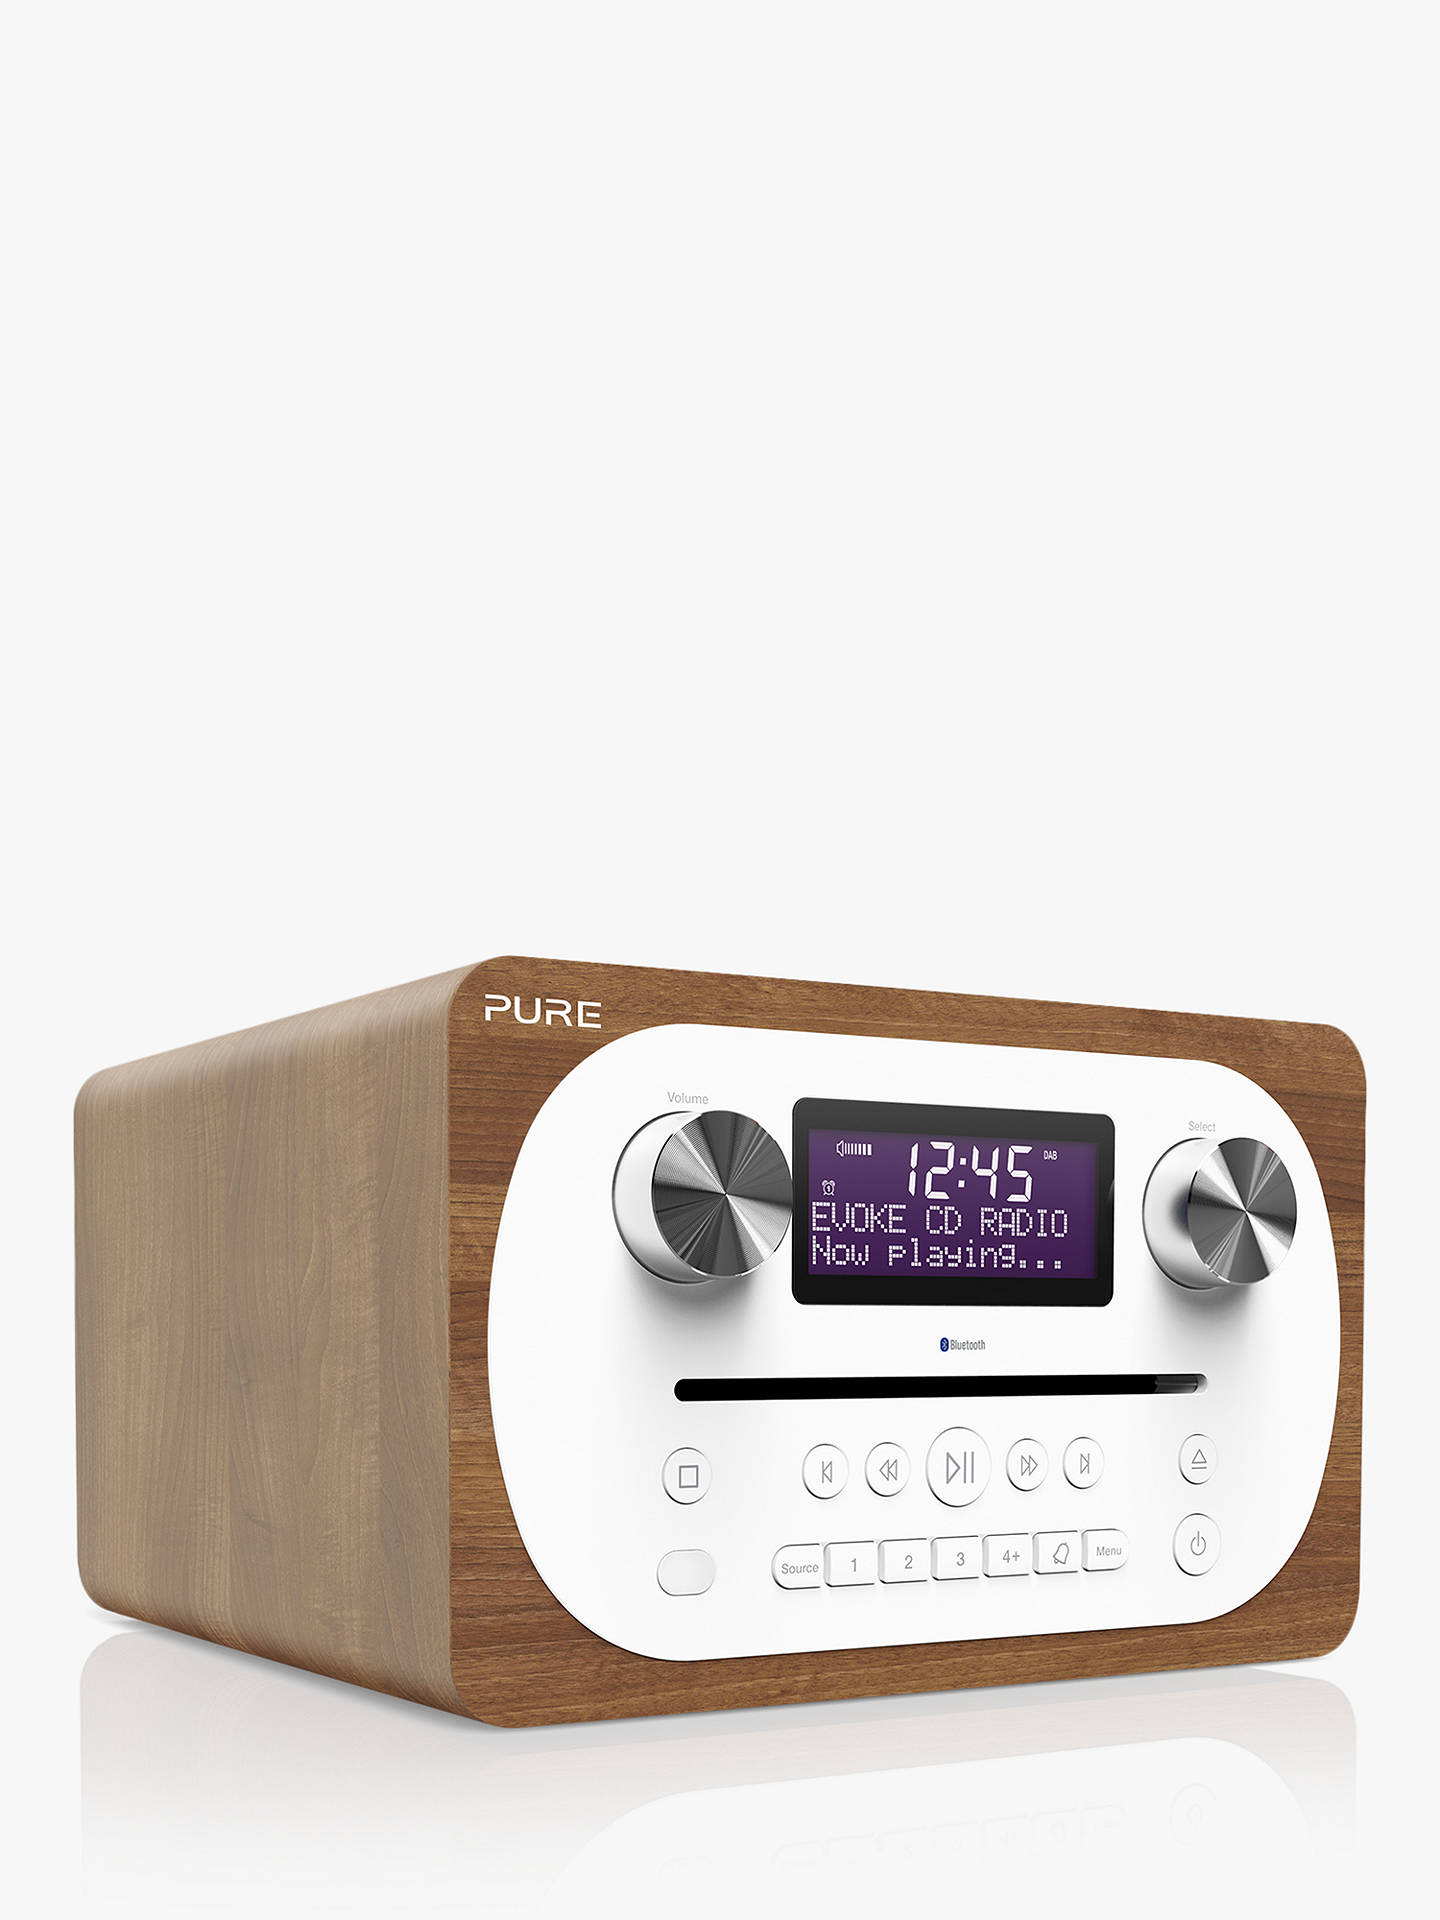 BuyPure Evoke C D4 DAB FM Bluetooth pact All In e Music